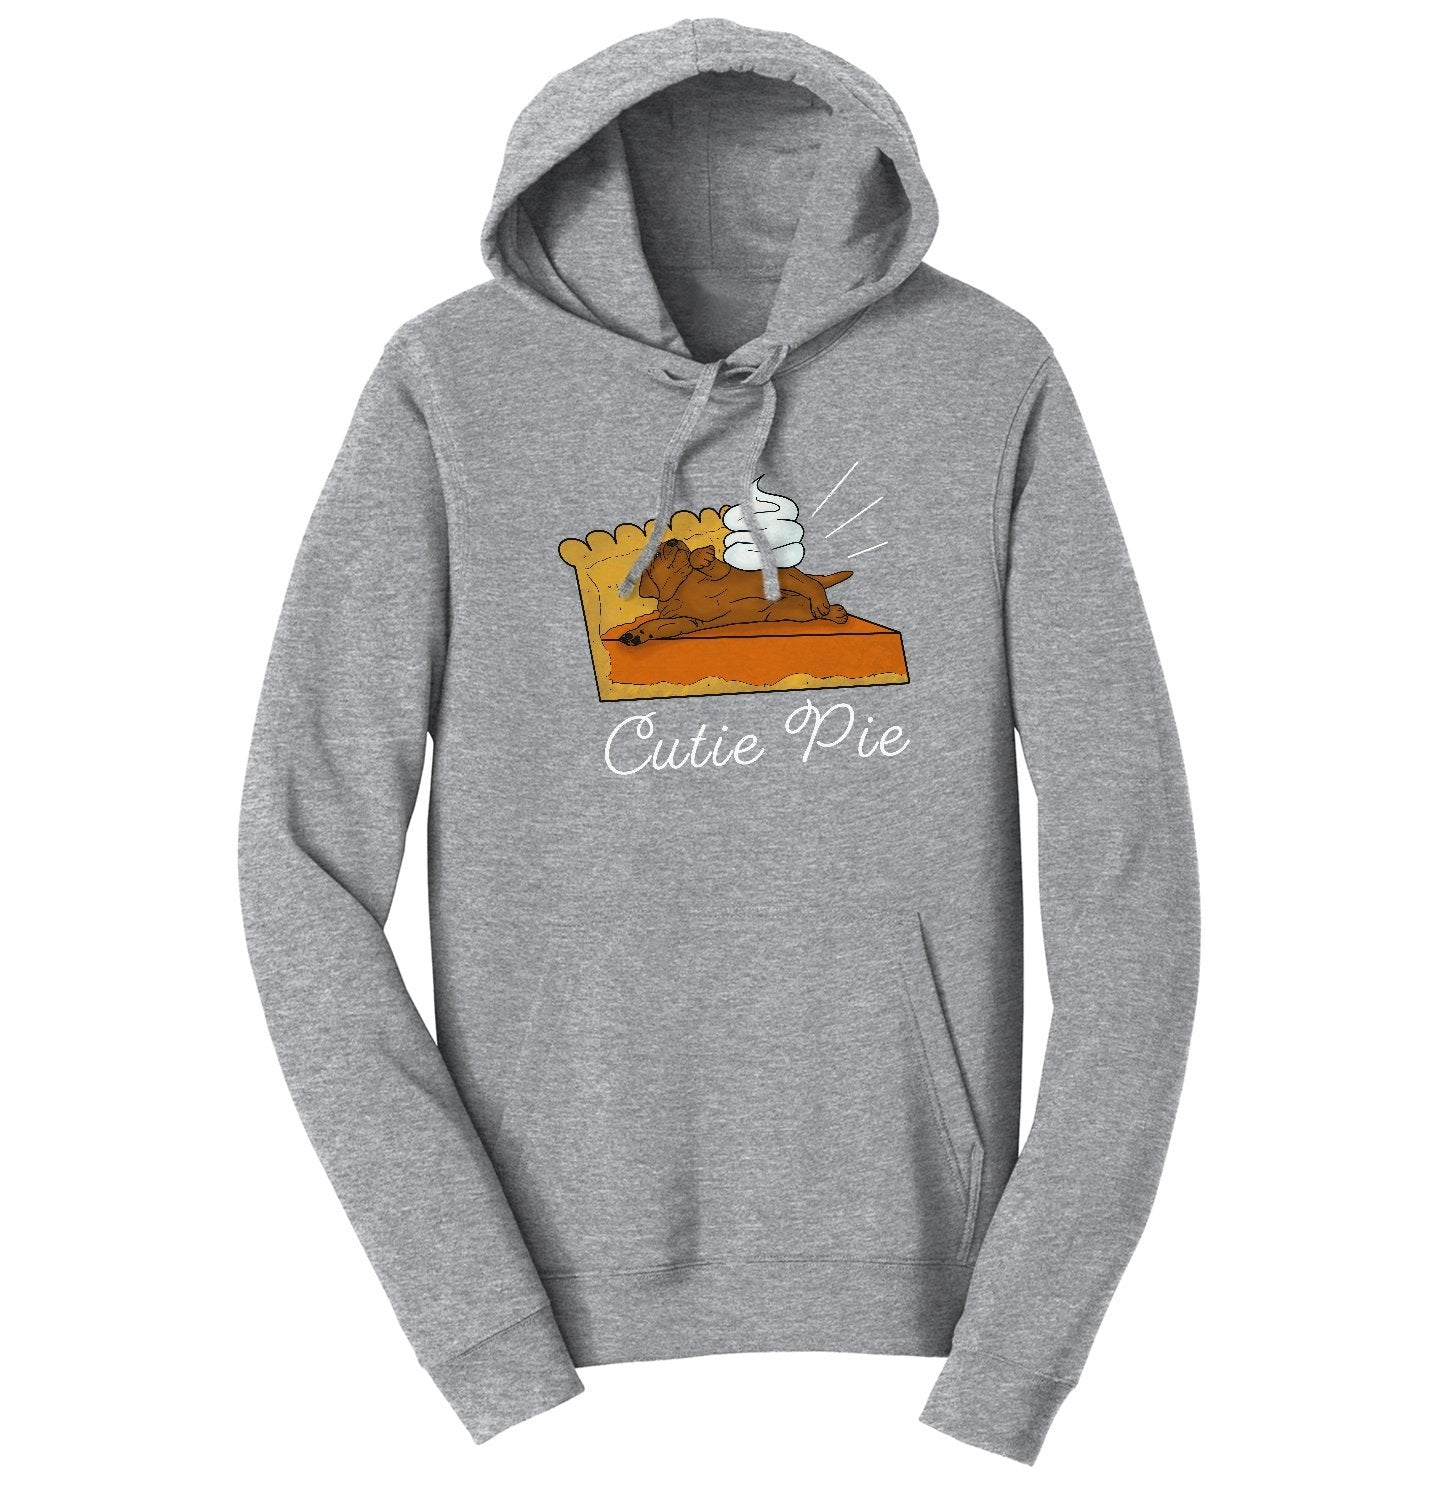 Labradors.com | Cutie Pie Chocolate Lab - Adult Hoodie Sweatshirt